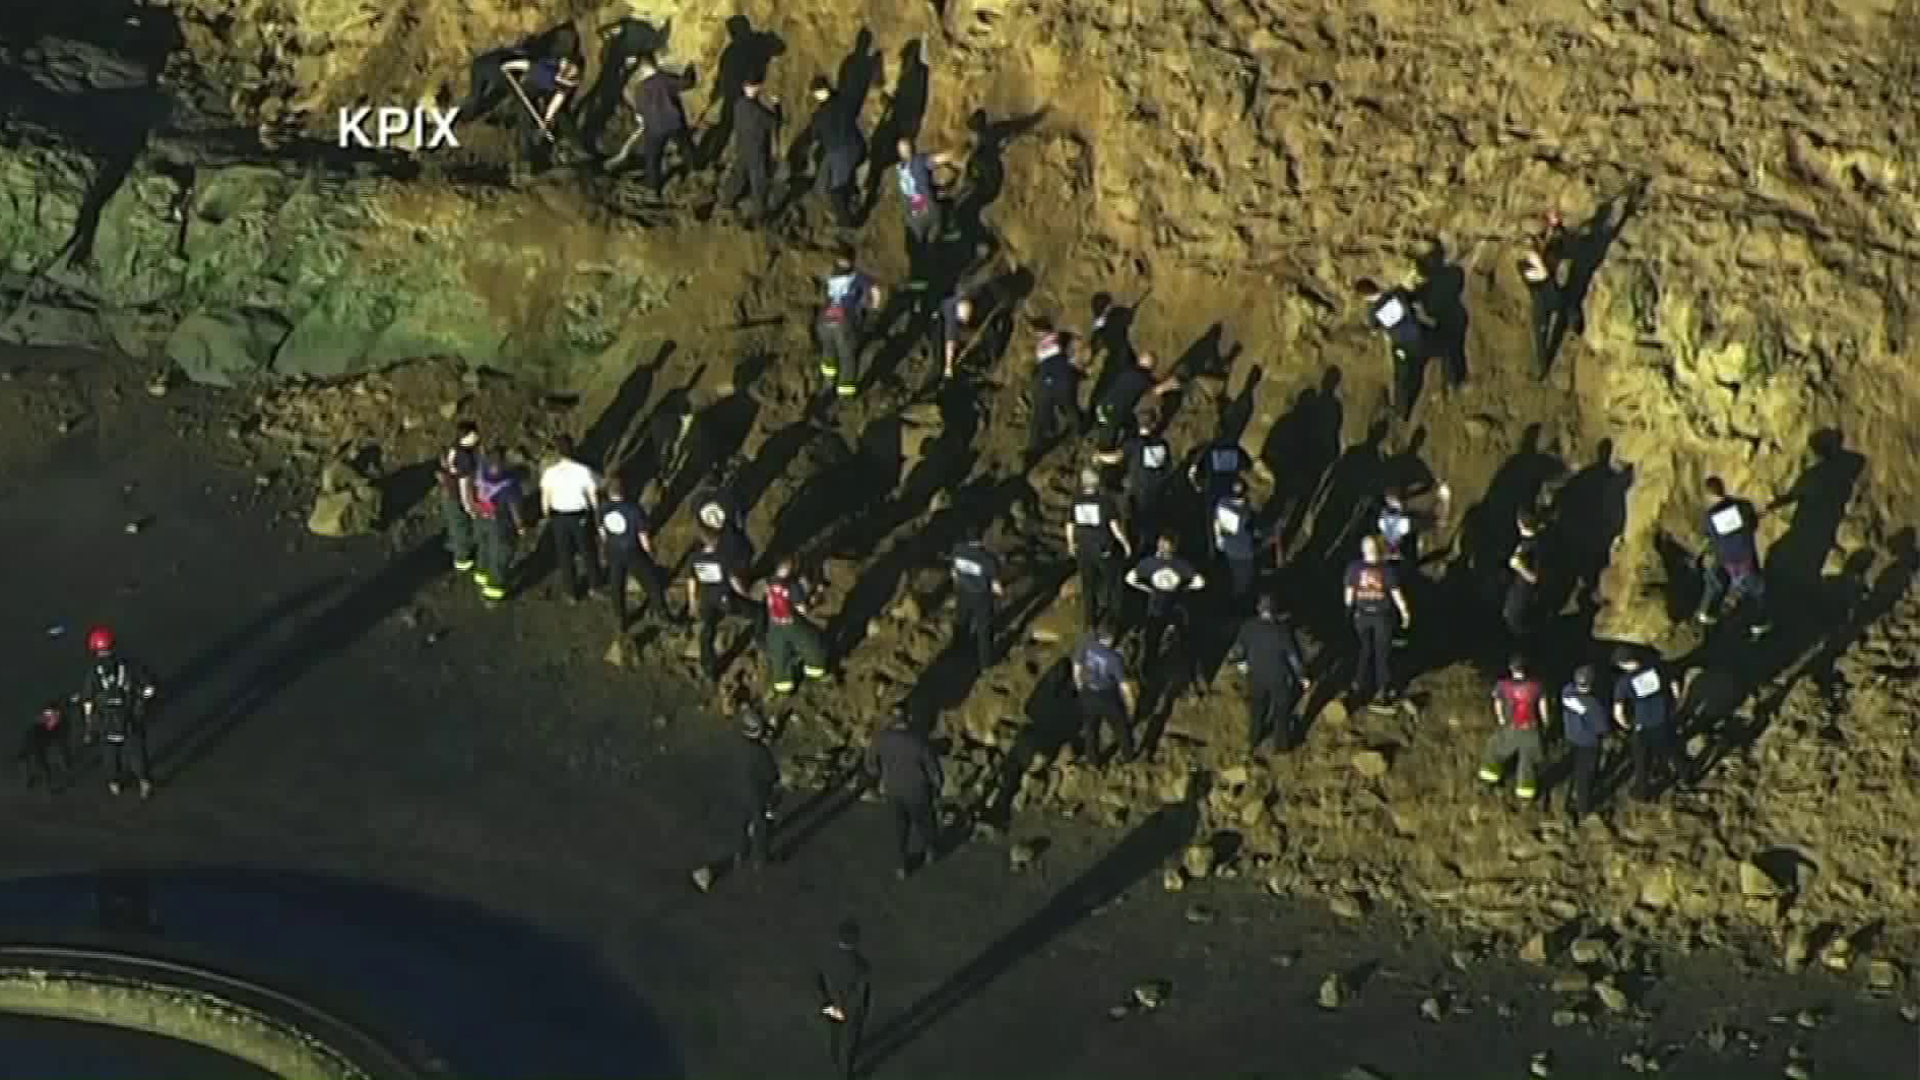 Rescue workers search for the body of a woman believed to be buried by a landslide at Fort Funston beach in San Francisco on Feb. 22, 2019. (Credit: KPIX via CNN)